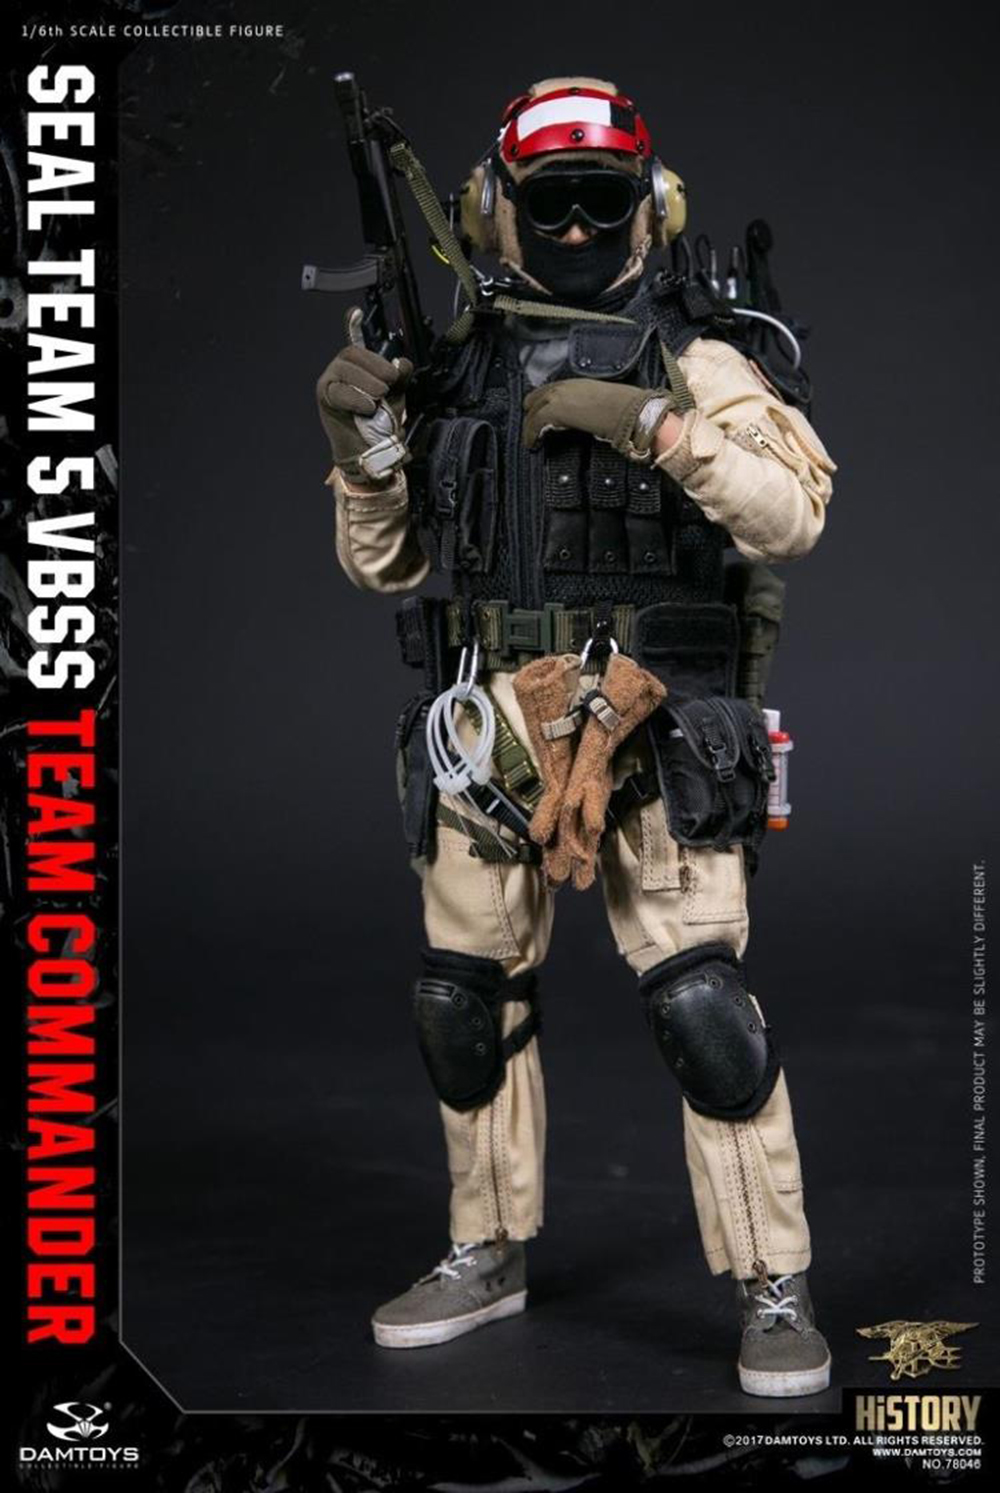 For Collection 78046 78045 1/6 Full Set Camouflage Solider HISTORY SERIES US SEAL TEAM 5 VBSS TEAM LEADER Male Action Figure image